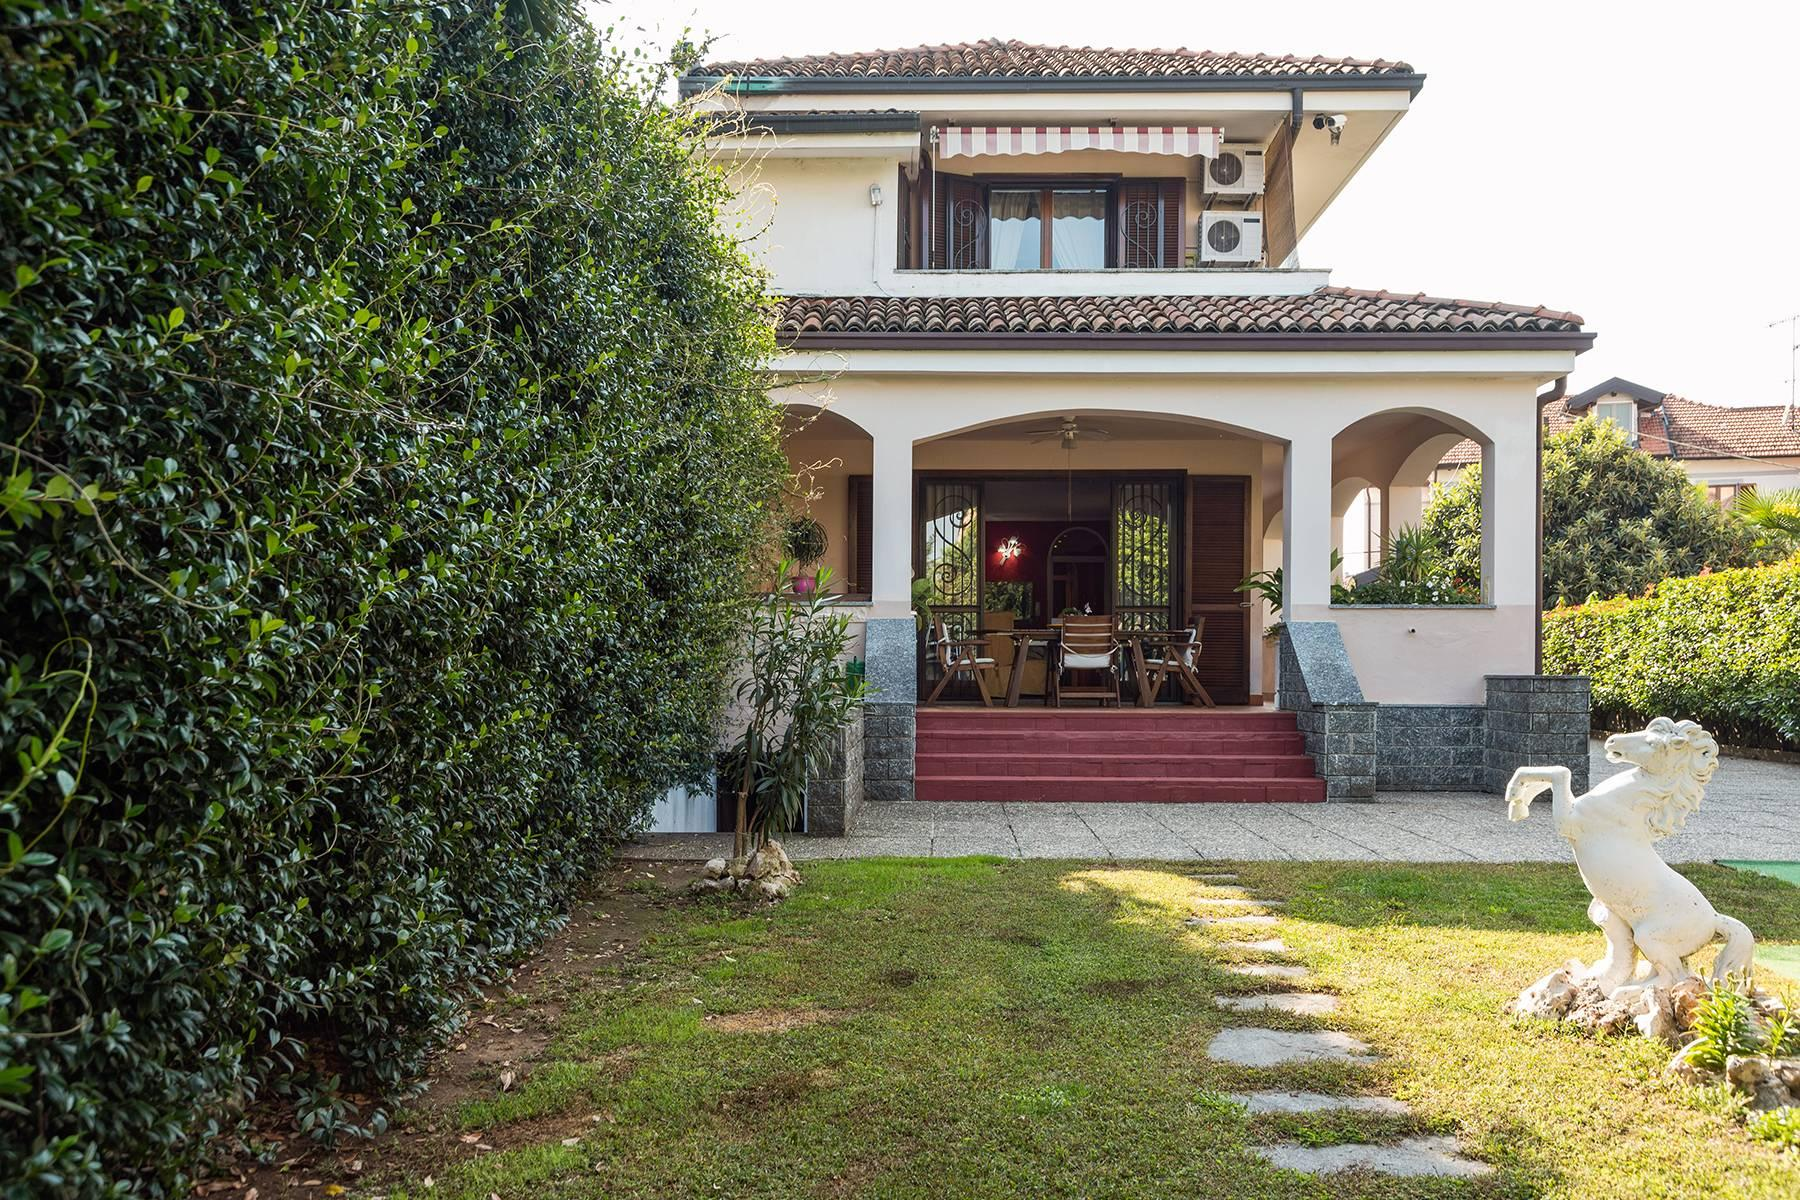 Independent villa a few steps from the heart of Arona - 1